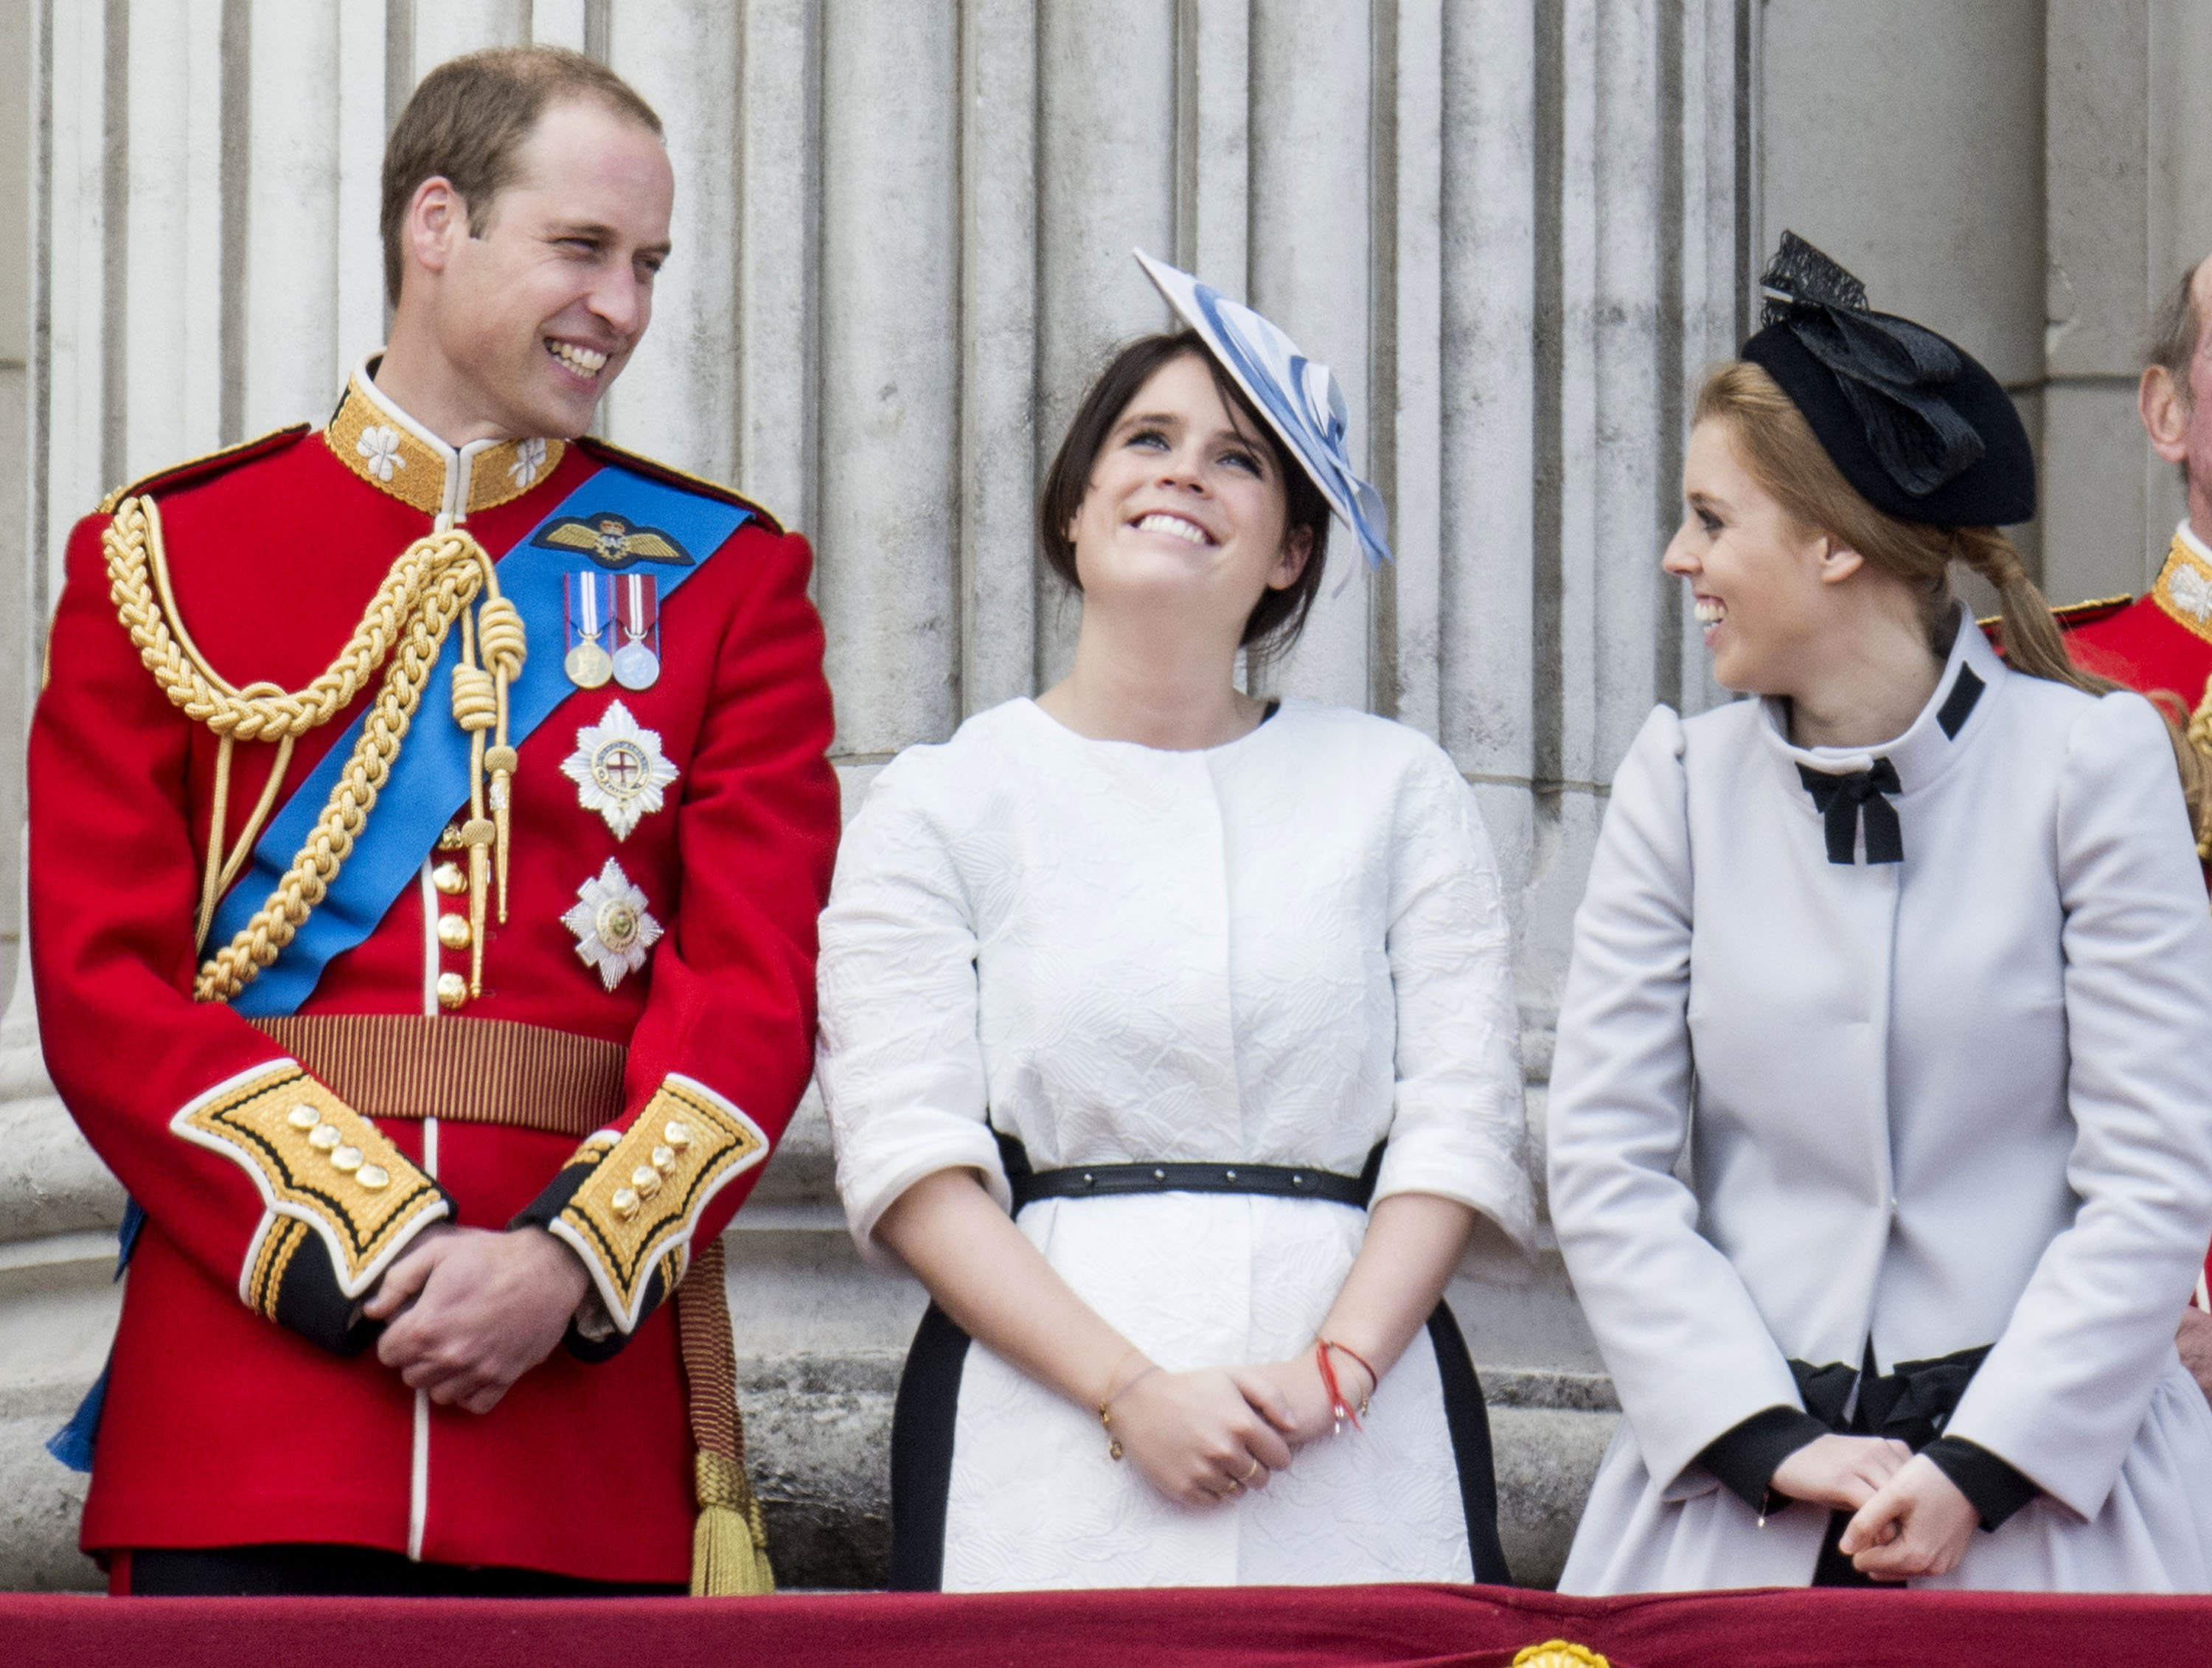 Prince William with Princesses Eugenie and Beatrice during the annual Trooping The Colour ceremony at Buckingham Palace on June 15, 2013 in London, England. | Source: Getty Images